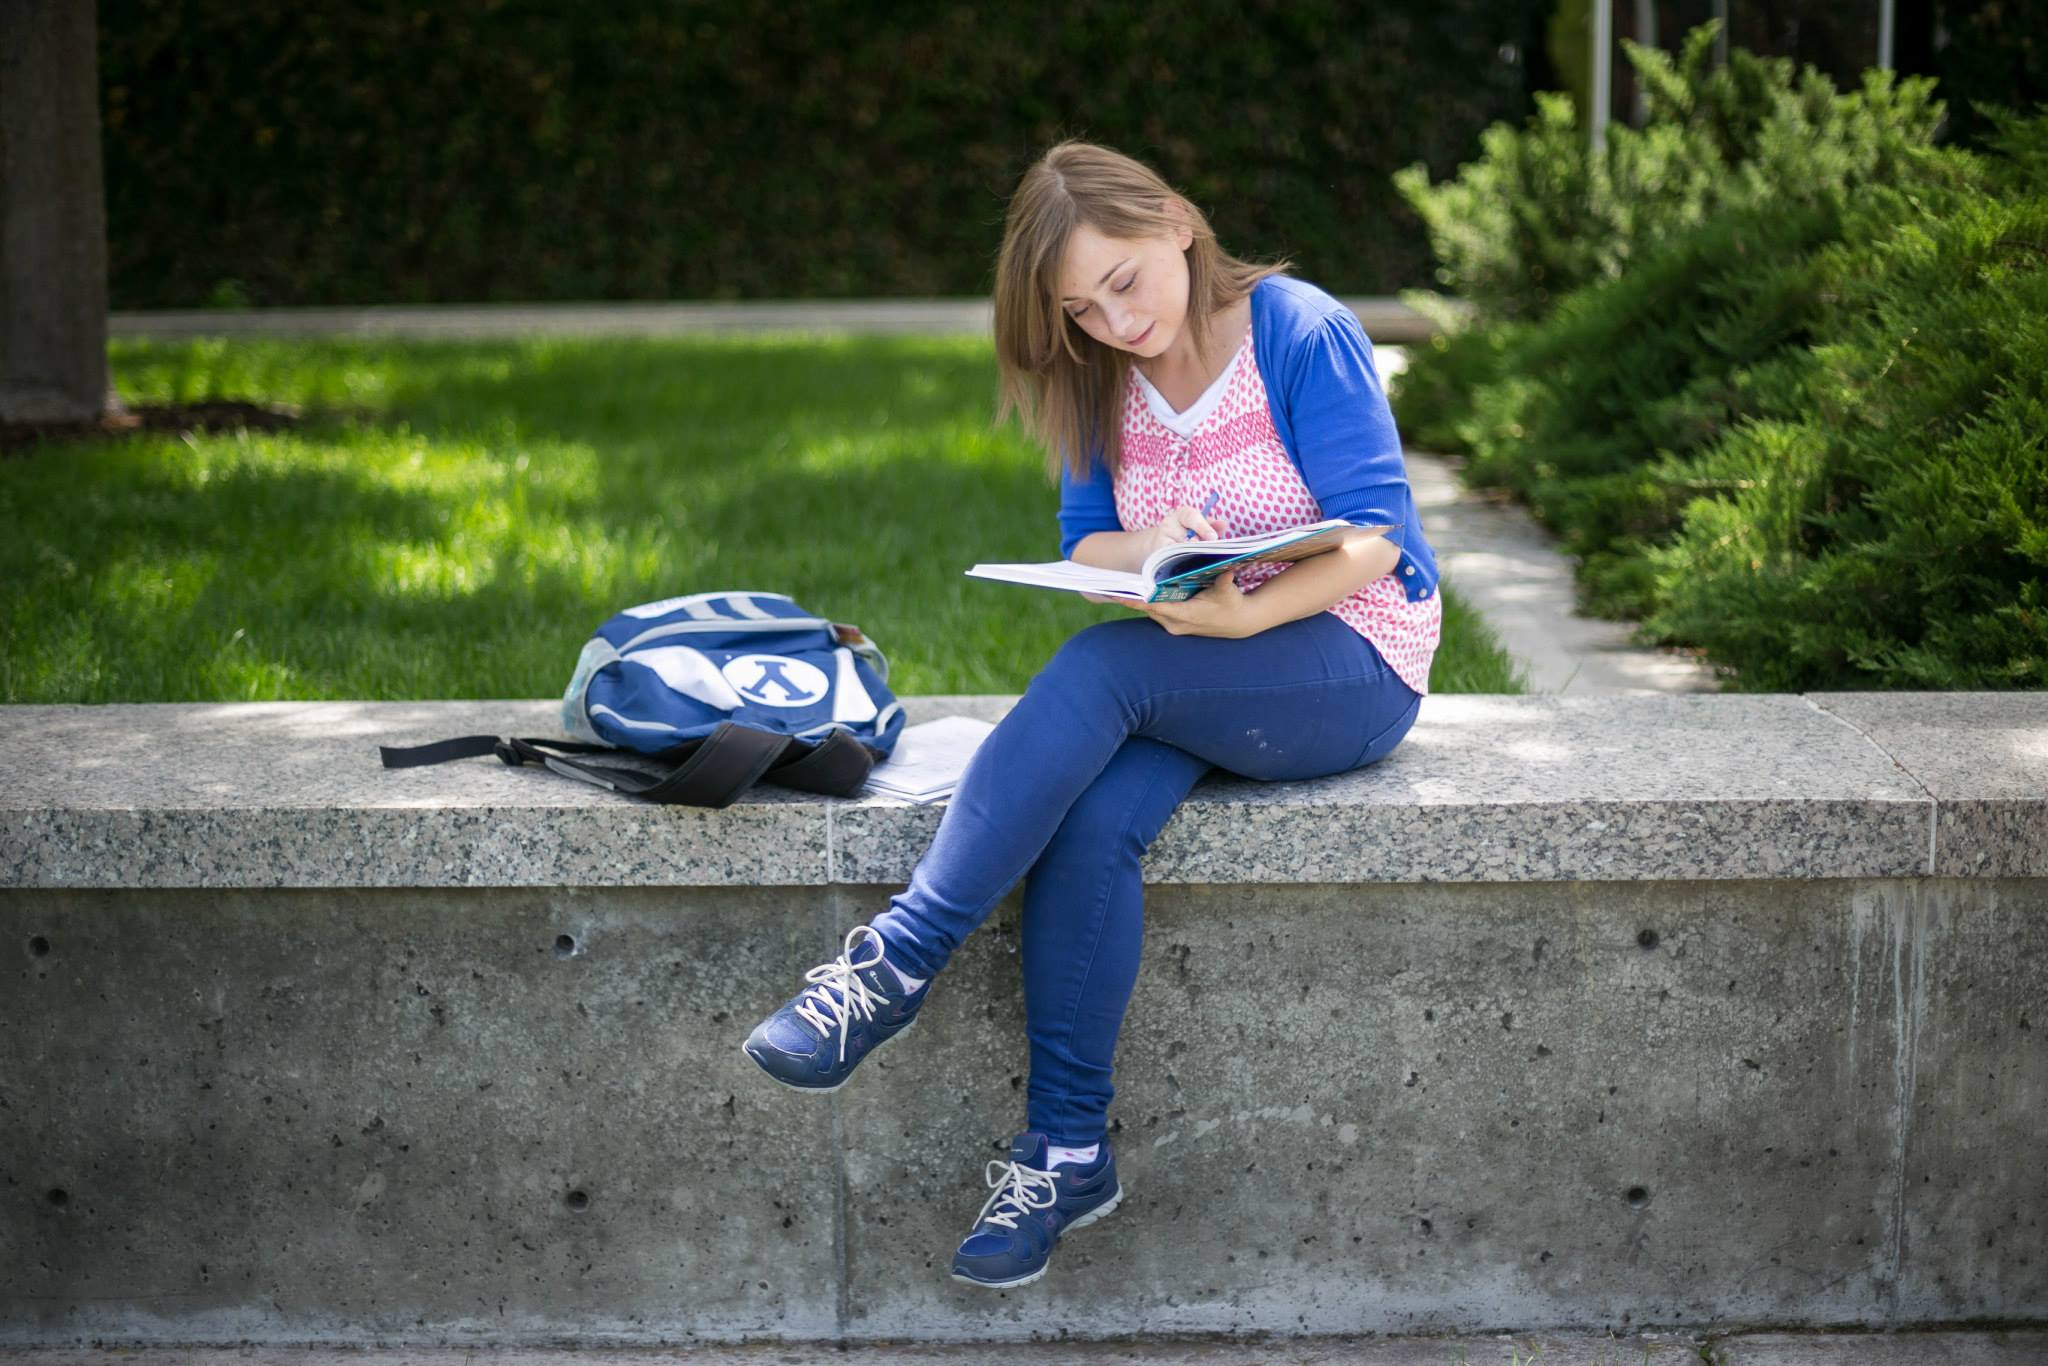 international students face challenges Academic difficulties international students may have troubles in classes when they first arrived cultural differences present very real personal and professional challenges in academics.